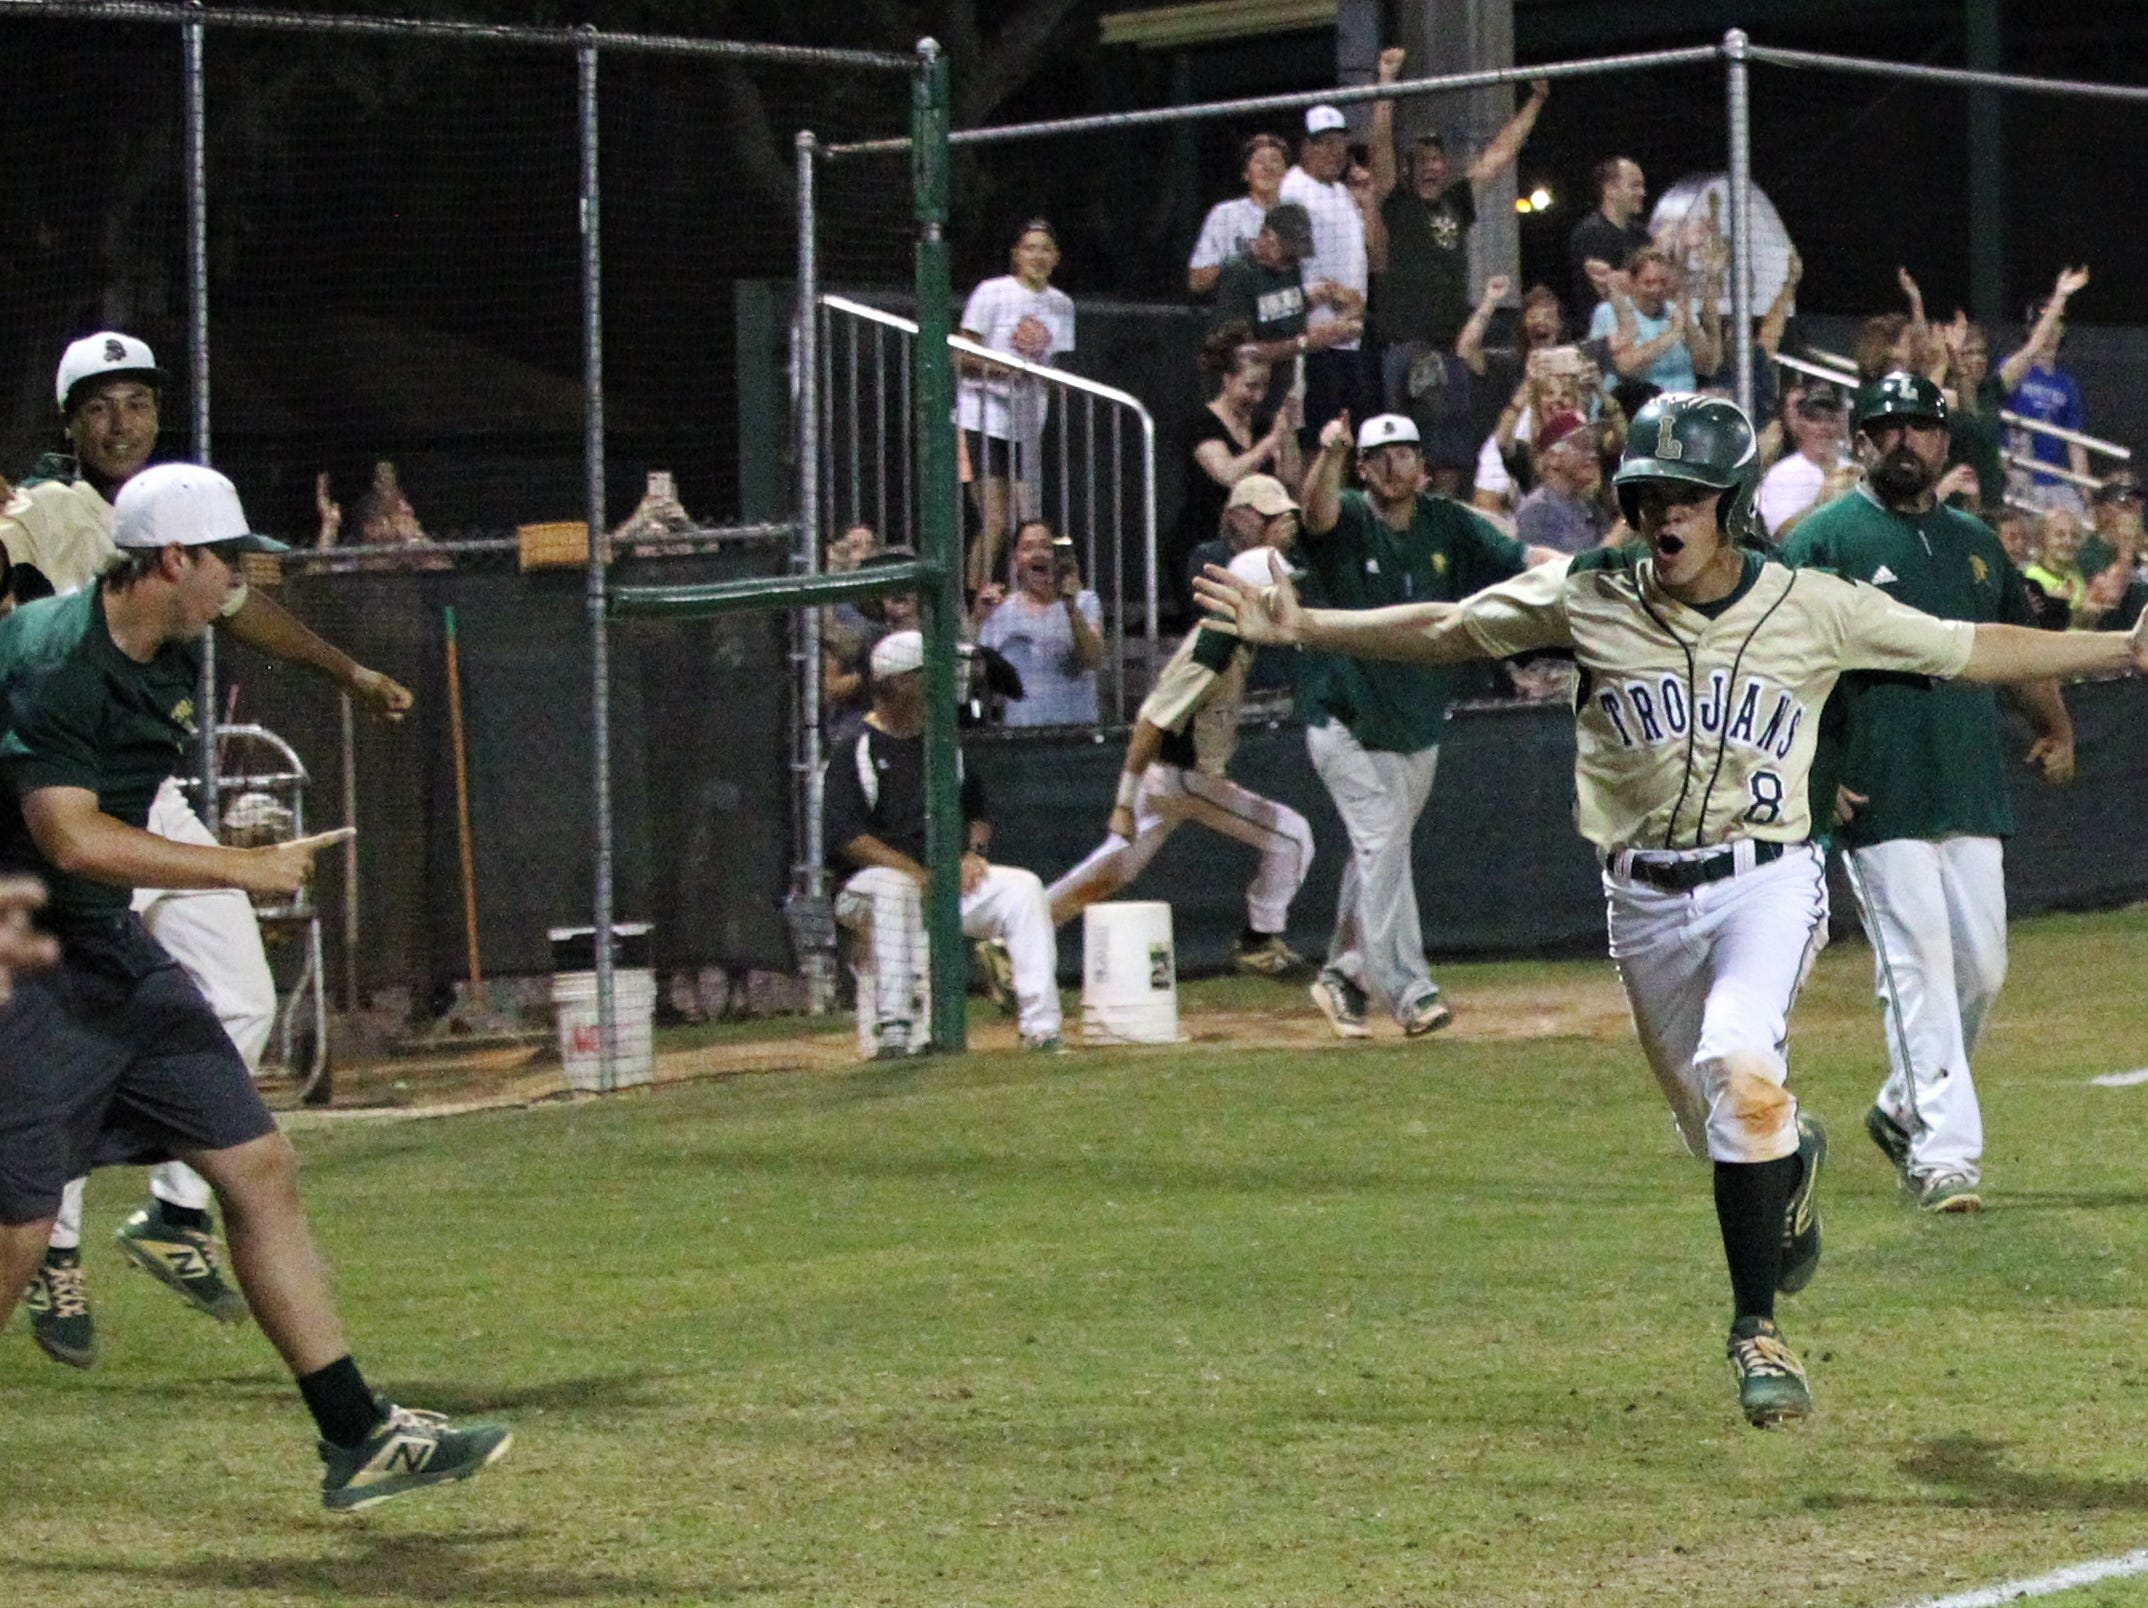 Lincoln junior Jared Edmonston comes in to score on Justin Bradgon's walk-off double as Lincoln baseball beat Chiles 5-4  in 10 innings during a District 2-8A championship game on Thursday, May 9, 2019.